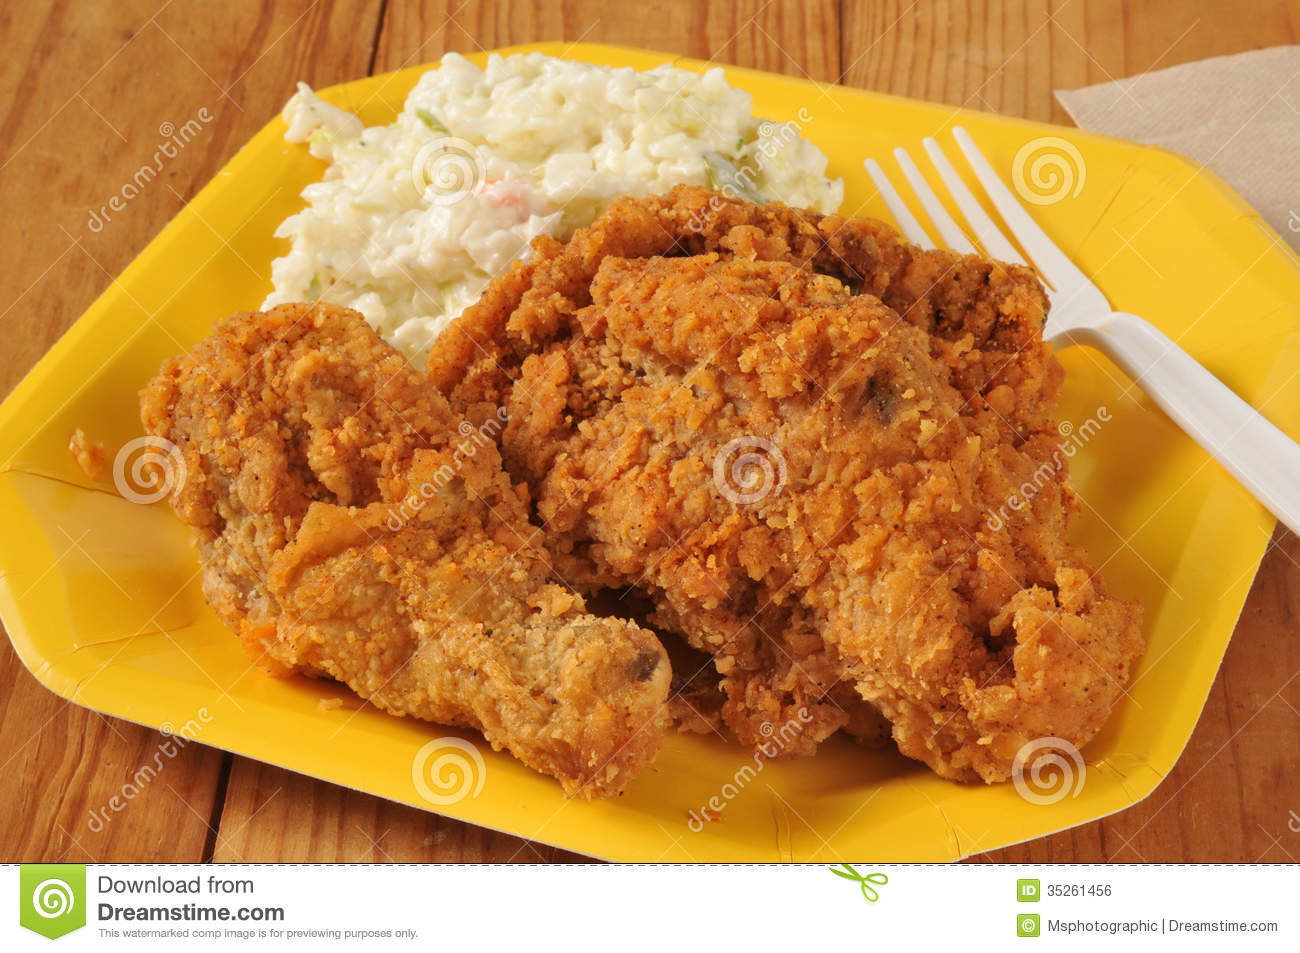 Fried Chicken With Coleslaw Royalty Free Stock Image - Image: 35261456